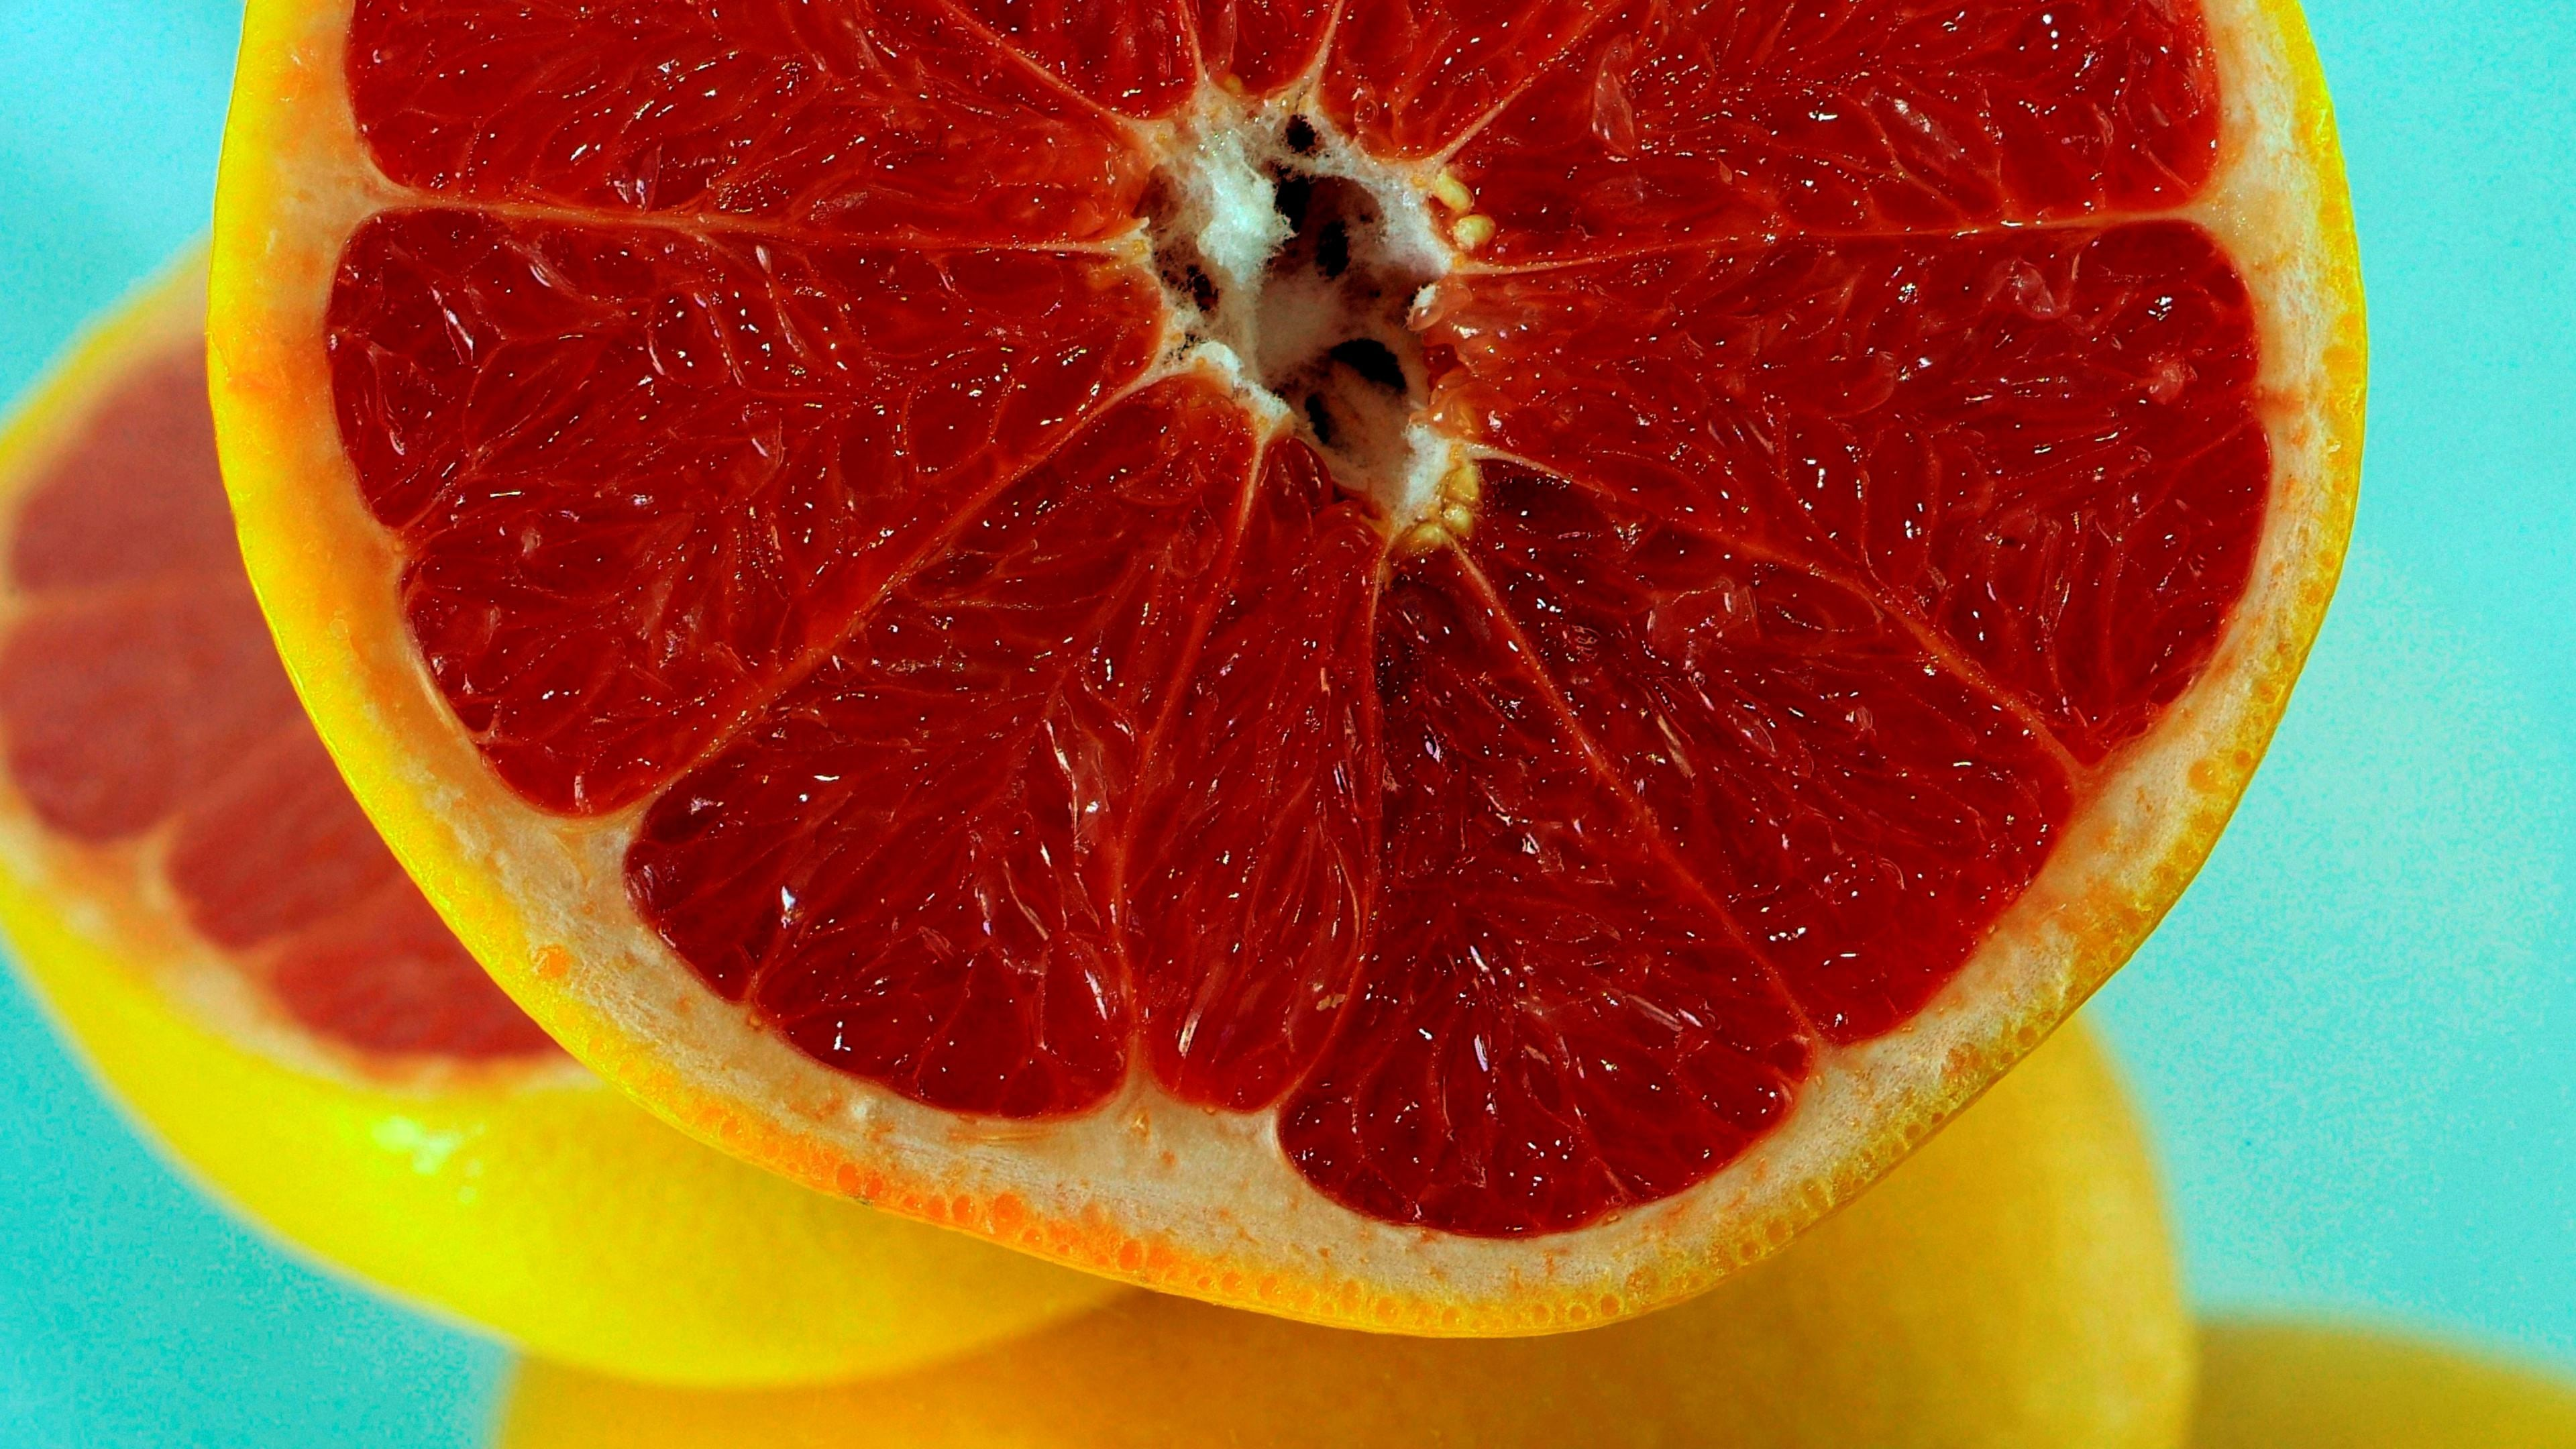 Grapefruit desktop wallpaper